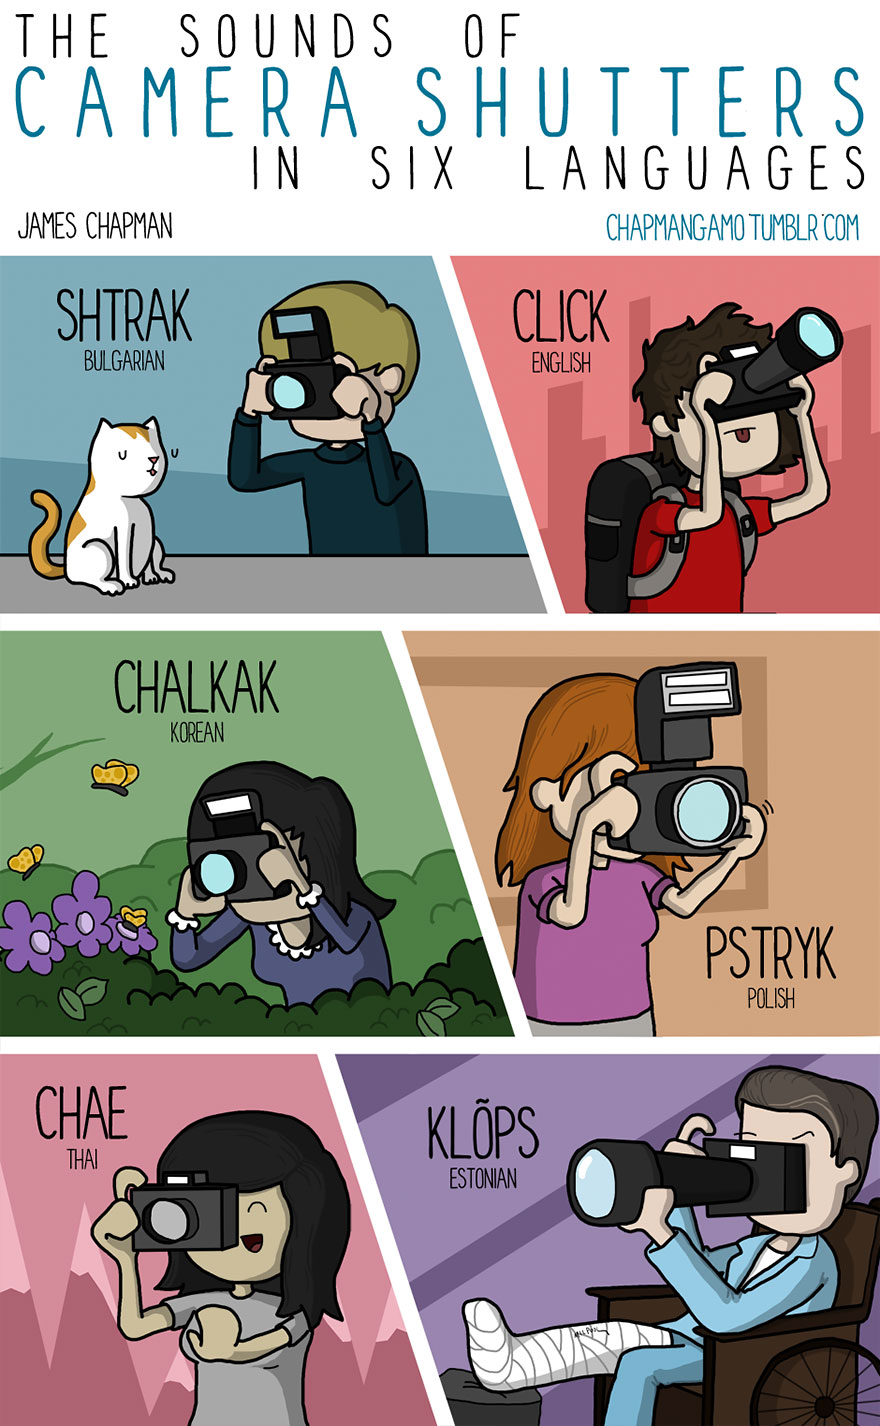 click in different languages